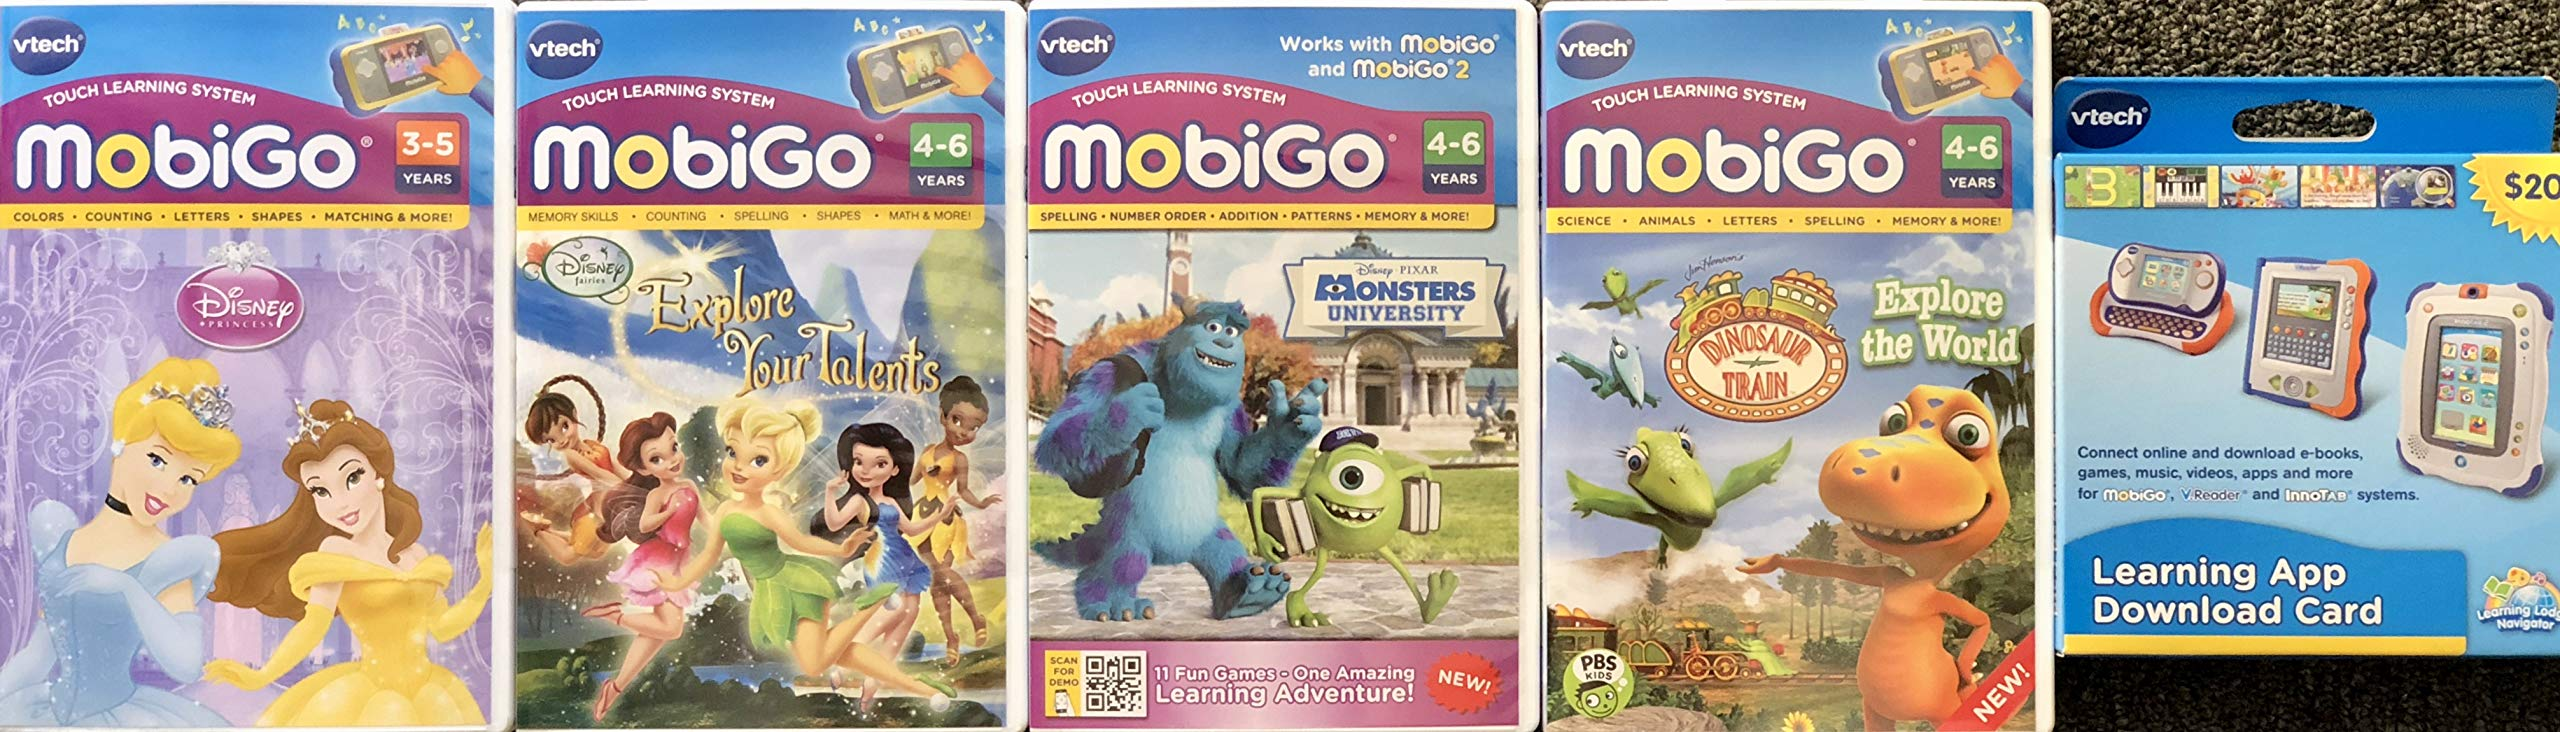 MobiGo Vtech Touch Learning System Bundle Includes: 4X Games - Disney Fairies, Disney Princess, Dinosaur Train, Monsters University & $20 Download Card (Bundle One)